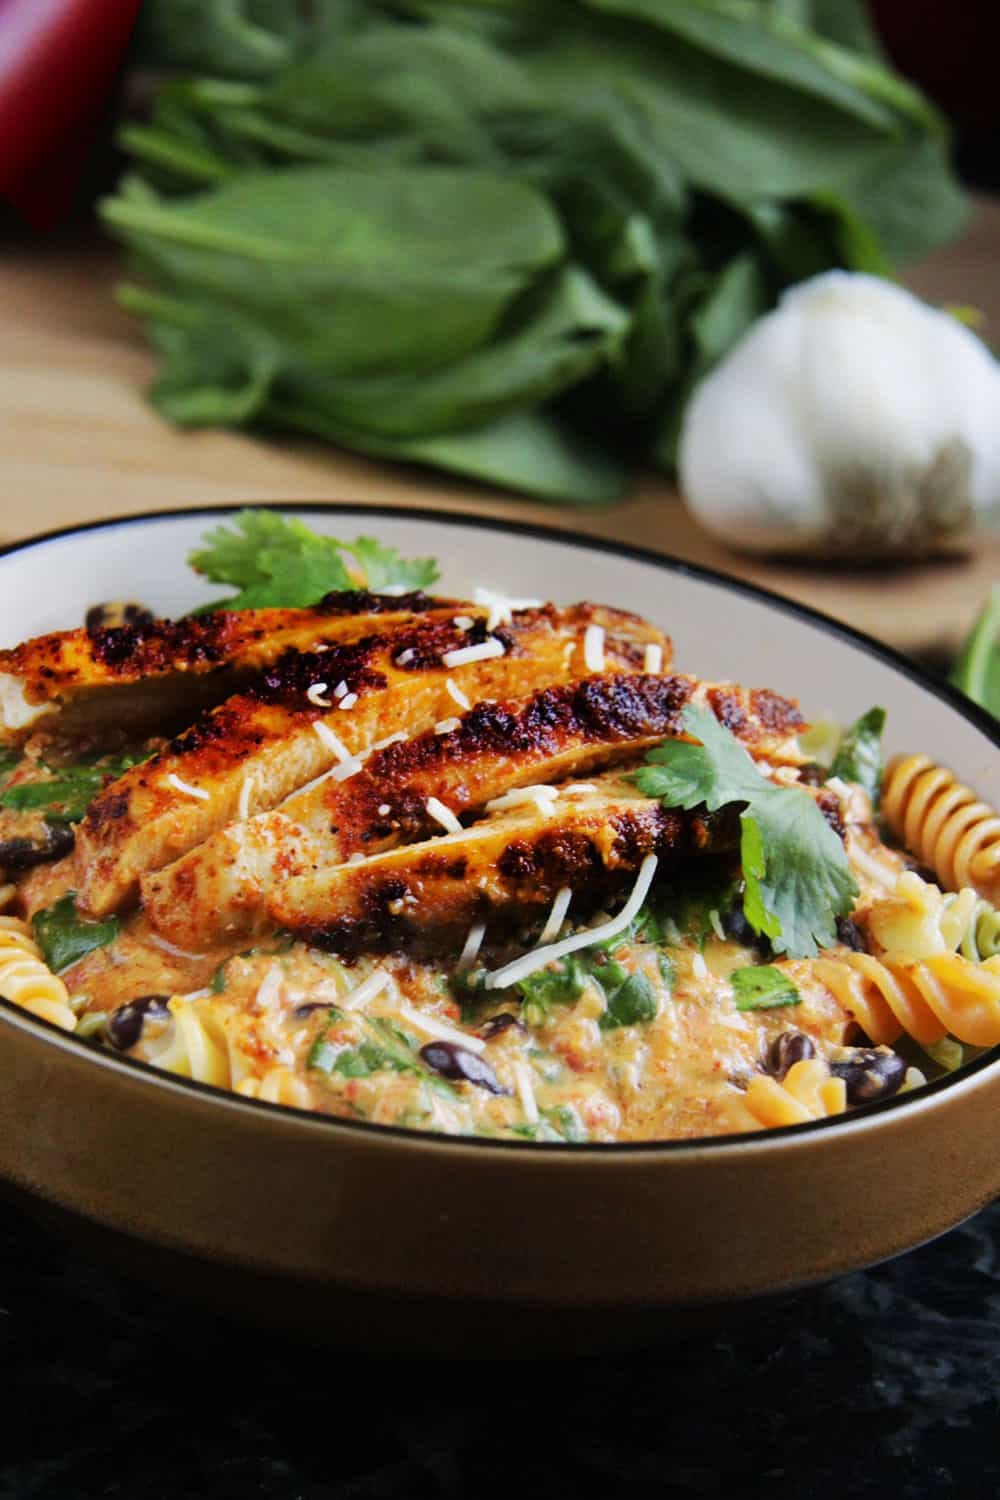 TexMex-Creamy-Roasted-Red-Pepper-Pasta-with-Blackened-Chipotle-Chicken-4